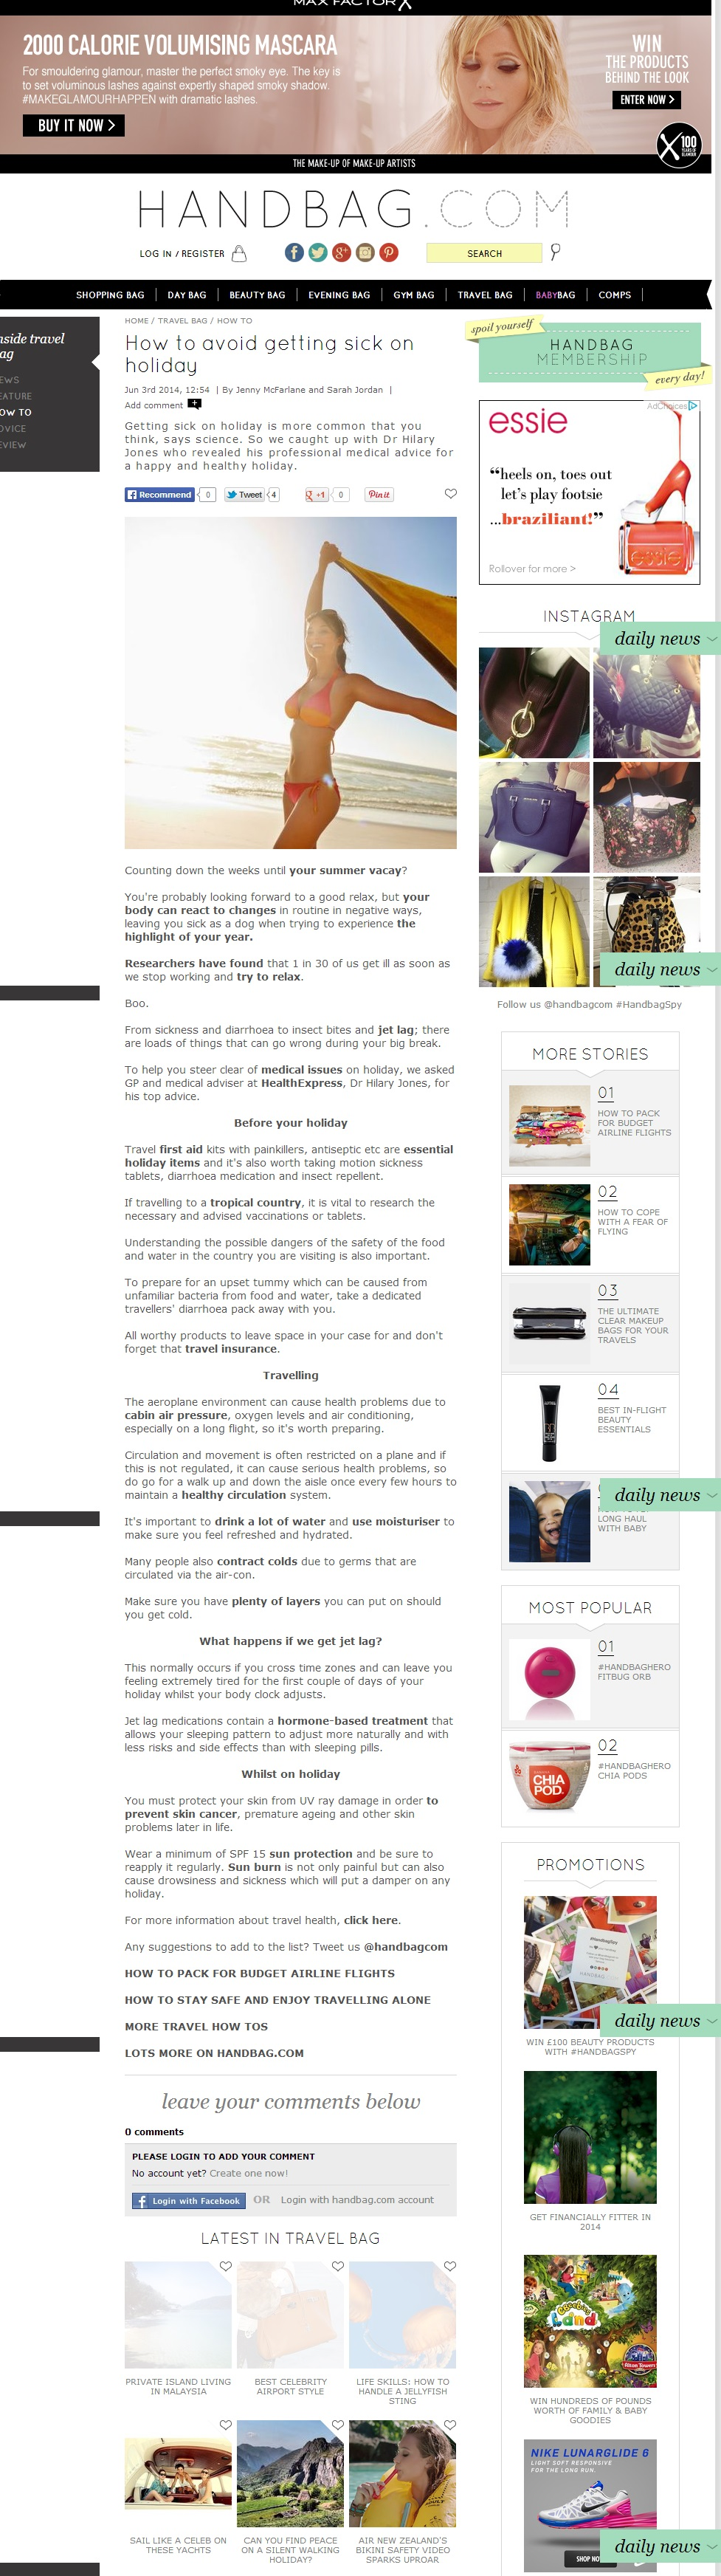 screencapture-www-handbag-com-travel-bag-how-to-a491390-how-to-avoid-getting-sick-on-holiday-html